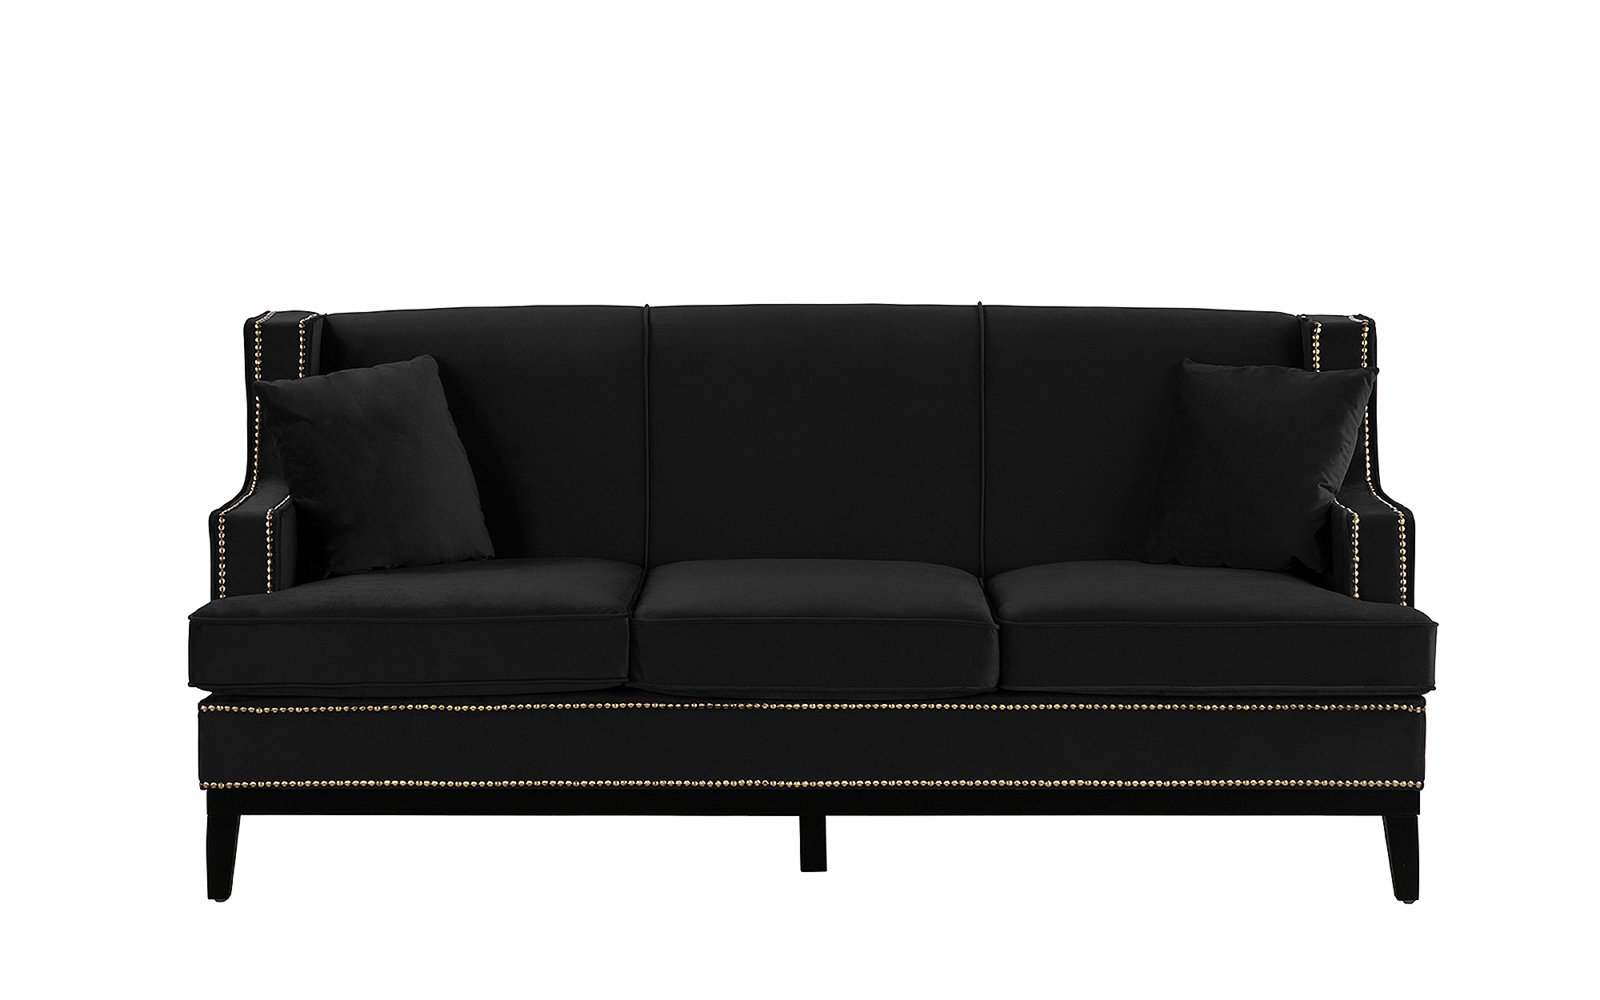 Modern Vintage Style Soft Velvet Sofa, Couch with Nailhead Trim ...